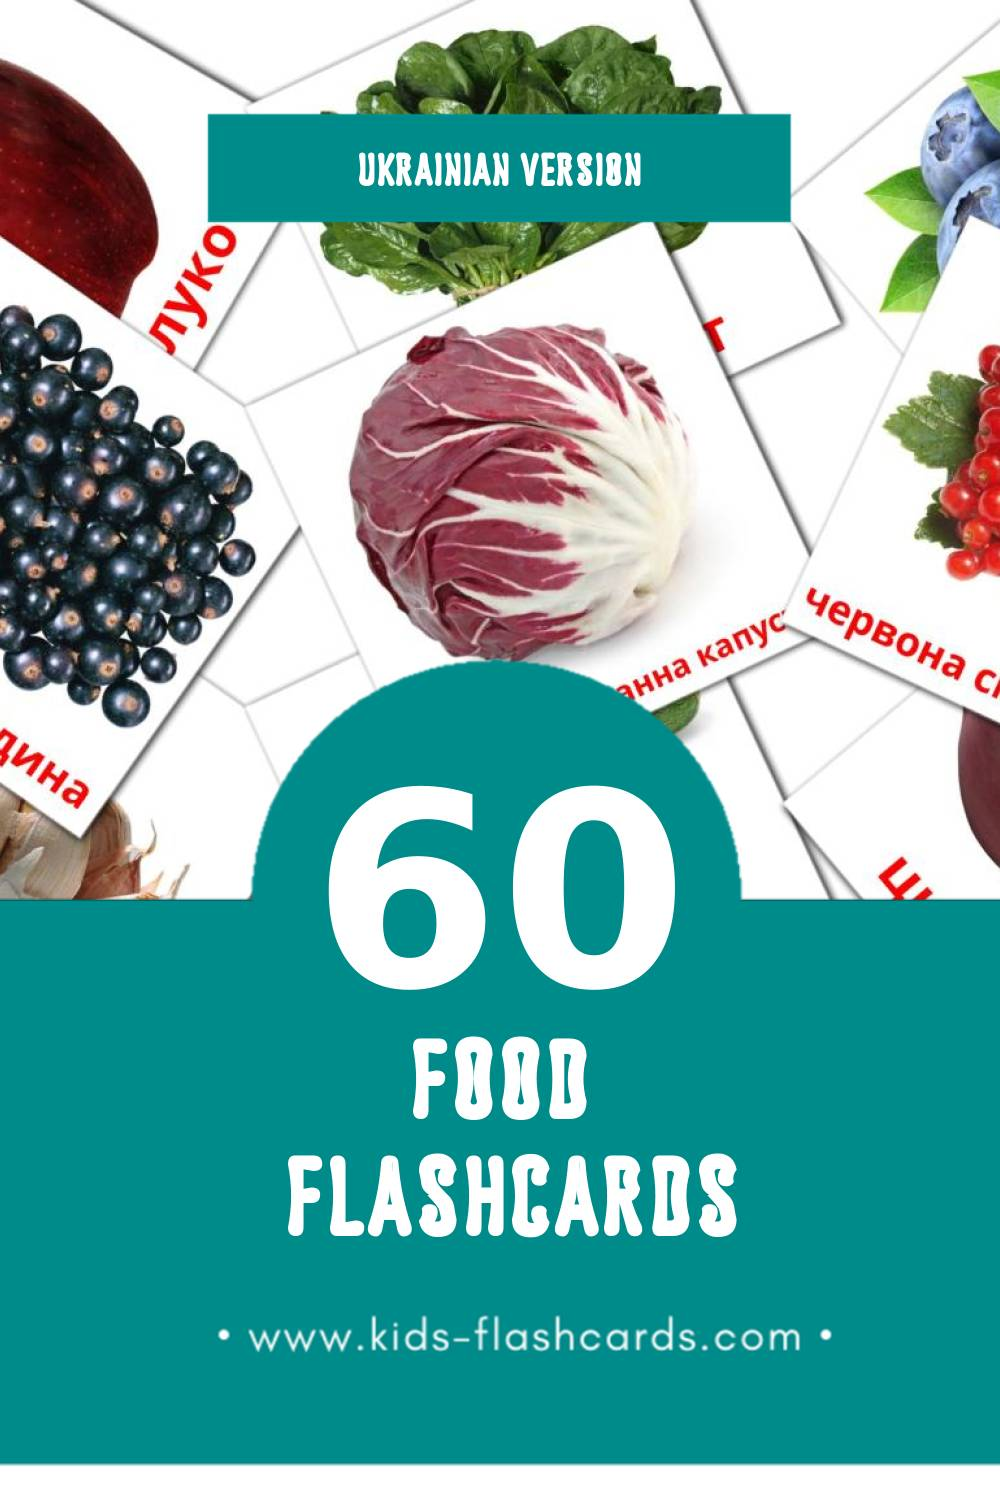 Visual Їжа Flashcards for Toddlers (60 cards in Ukrainian)